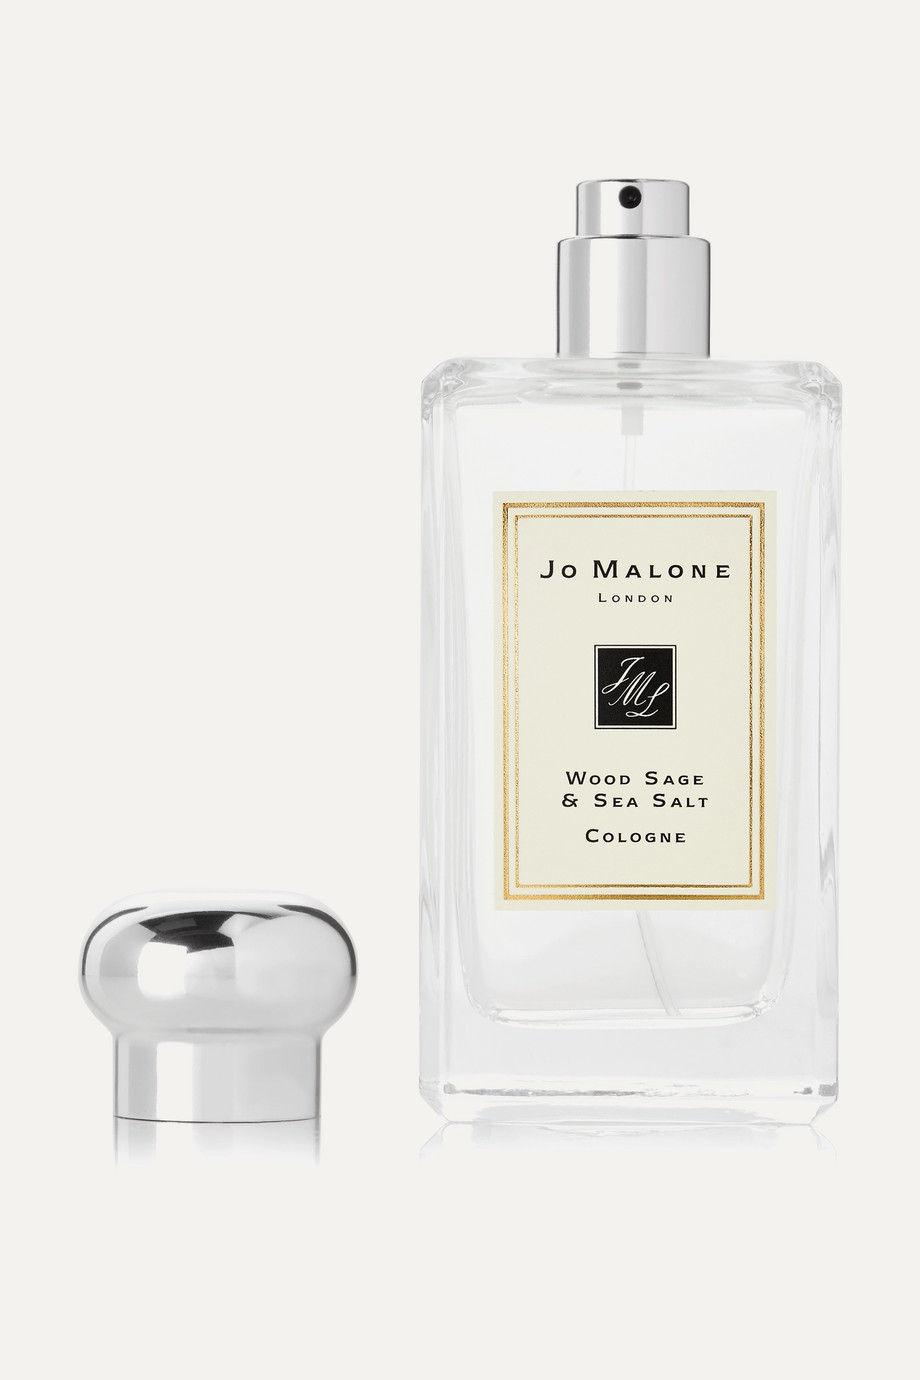 Jo Malone London Wood Sage & Sea Salt Cologne, 100ml